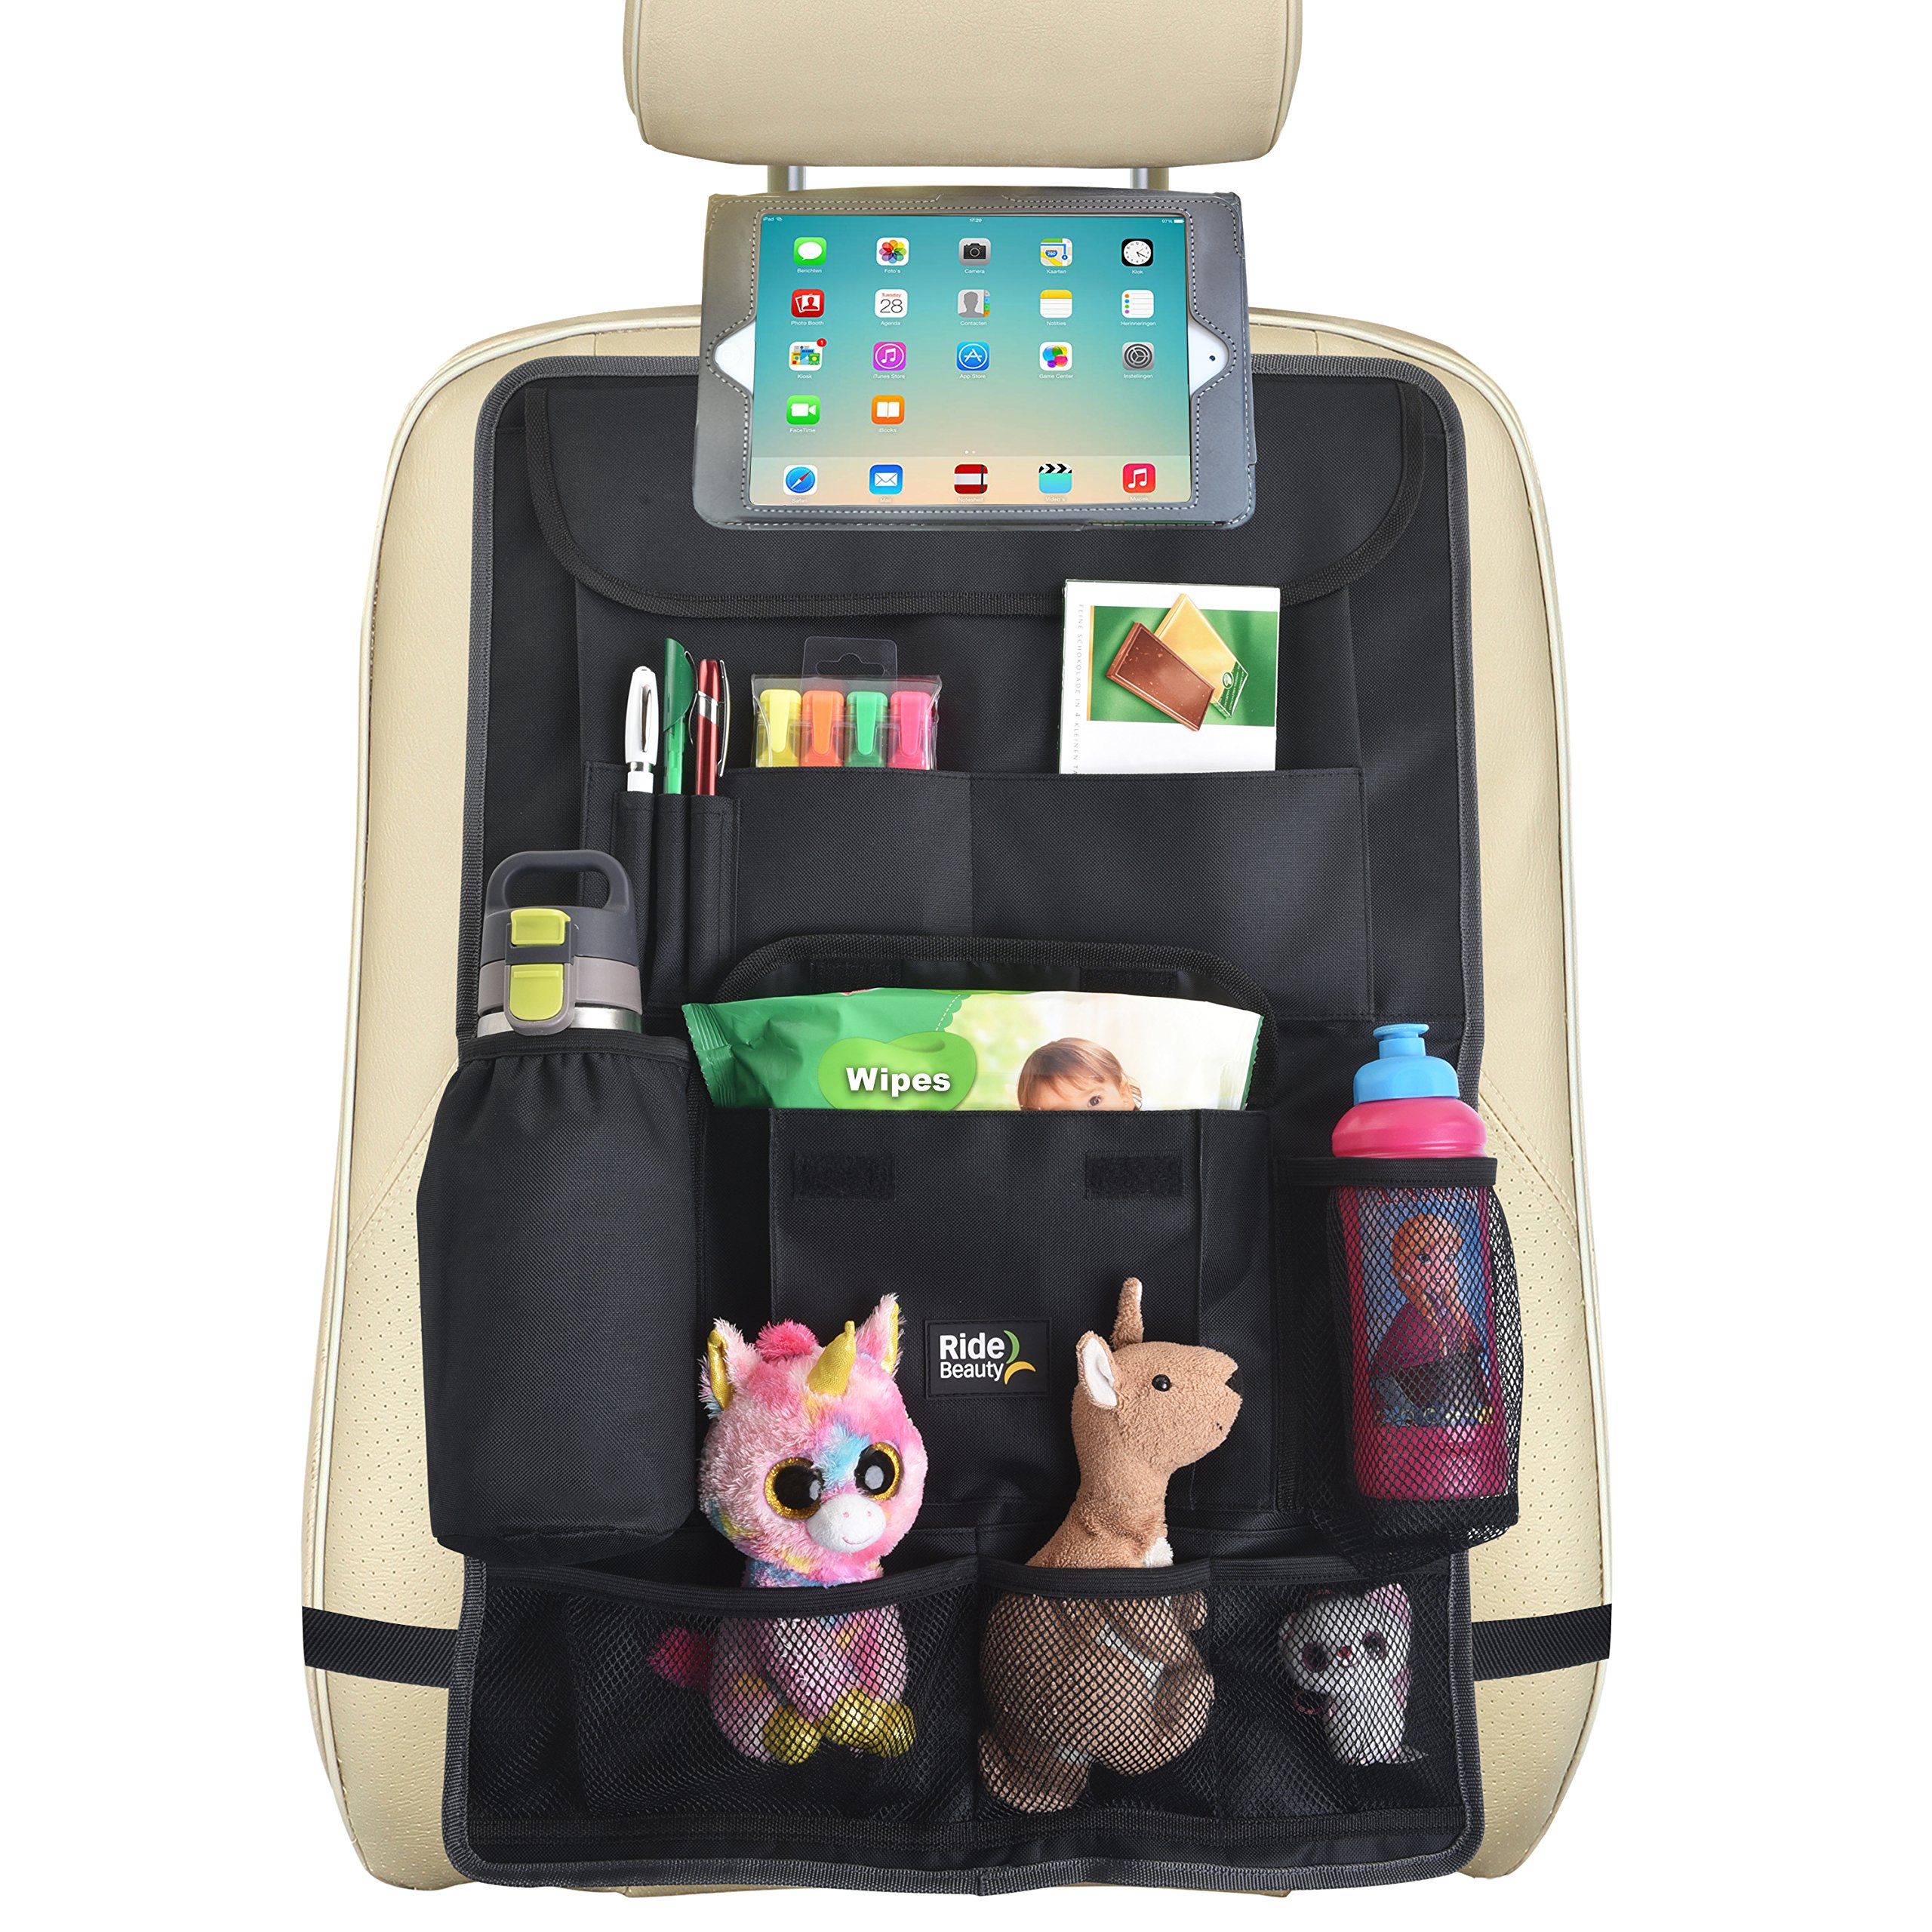 Backseat Car Organizer :: Extra Large Hanging Storage Bag with Tablet Holder + Multiple Pockets :: Fits All Car Seats, Hangs Flat, Holds Toys, Bottles & More, 26.7'' x 17.7'', Black by Ride Beauty